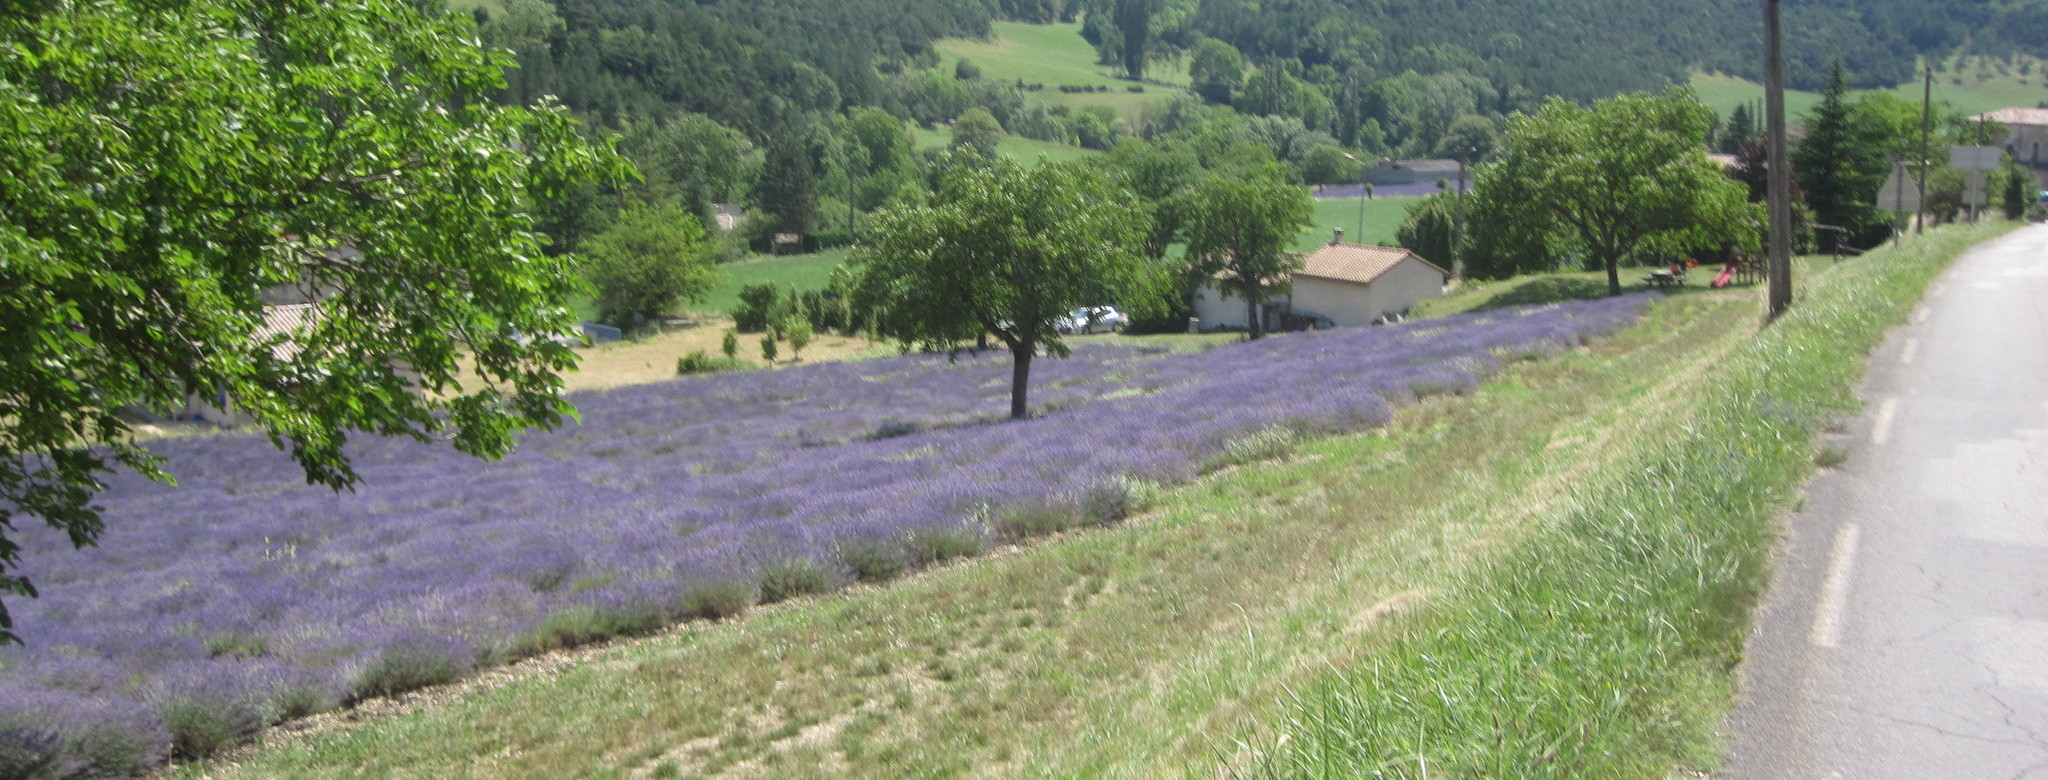 Lavender fields near Die.